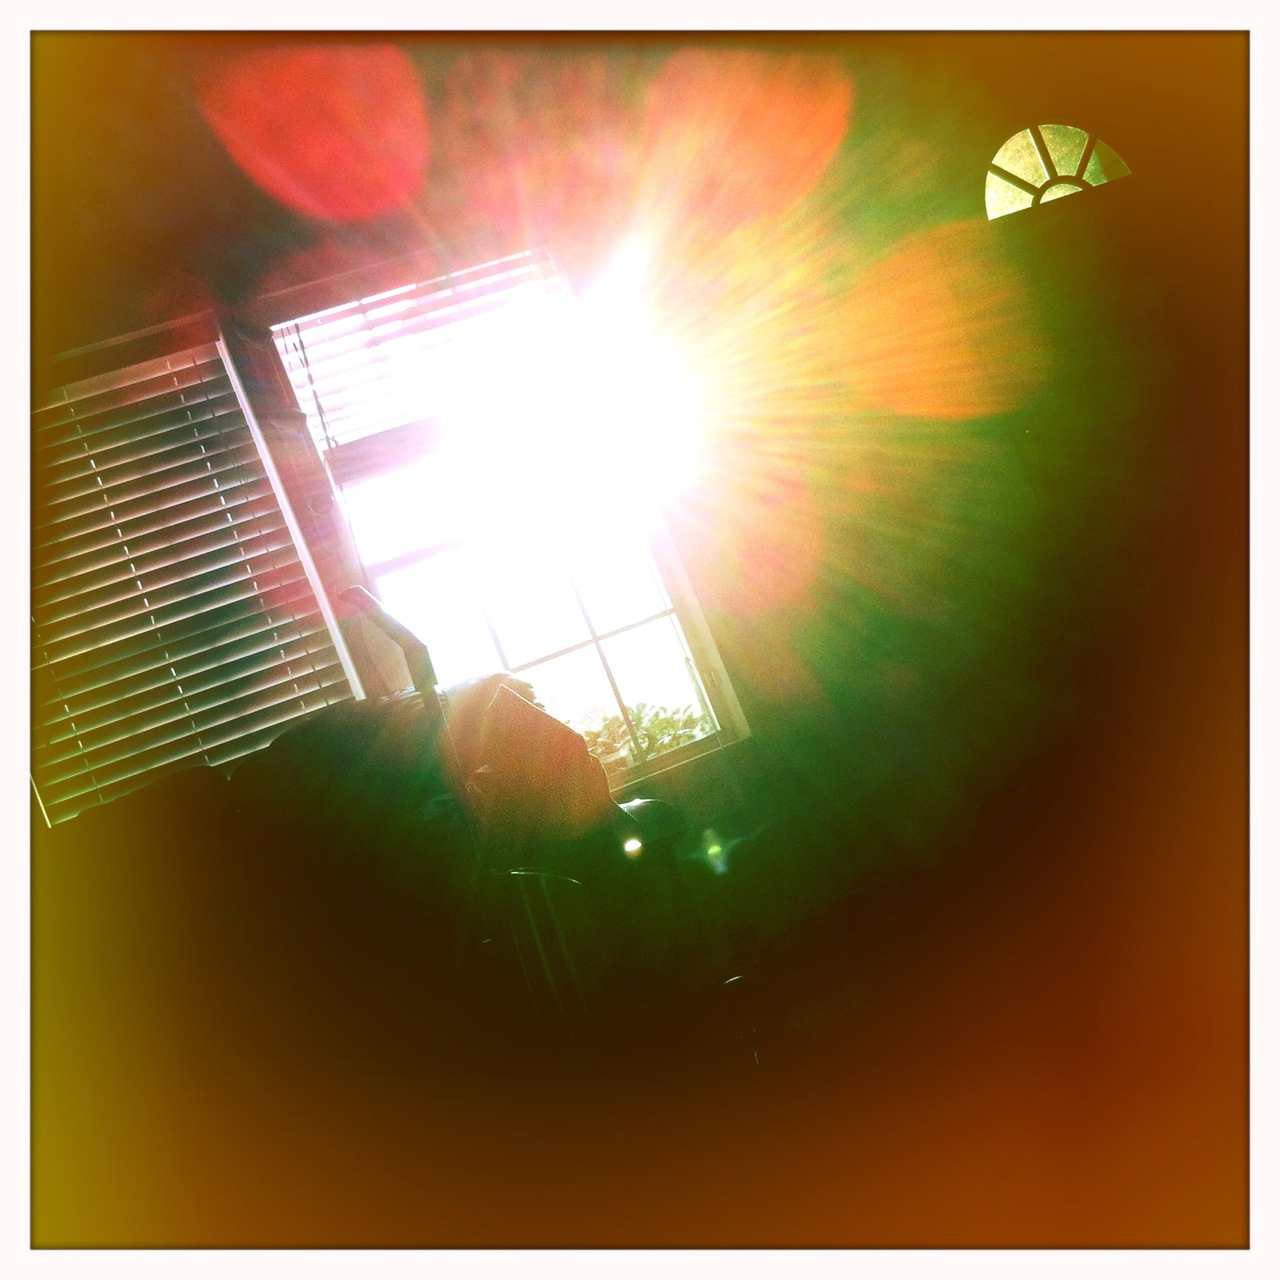 Sunrise through the window 2   John S Lens, Blanko Film, Cherry Shine Flash,